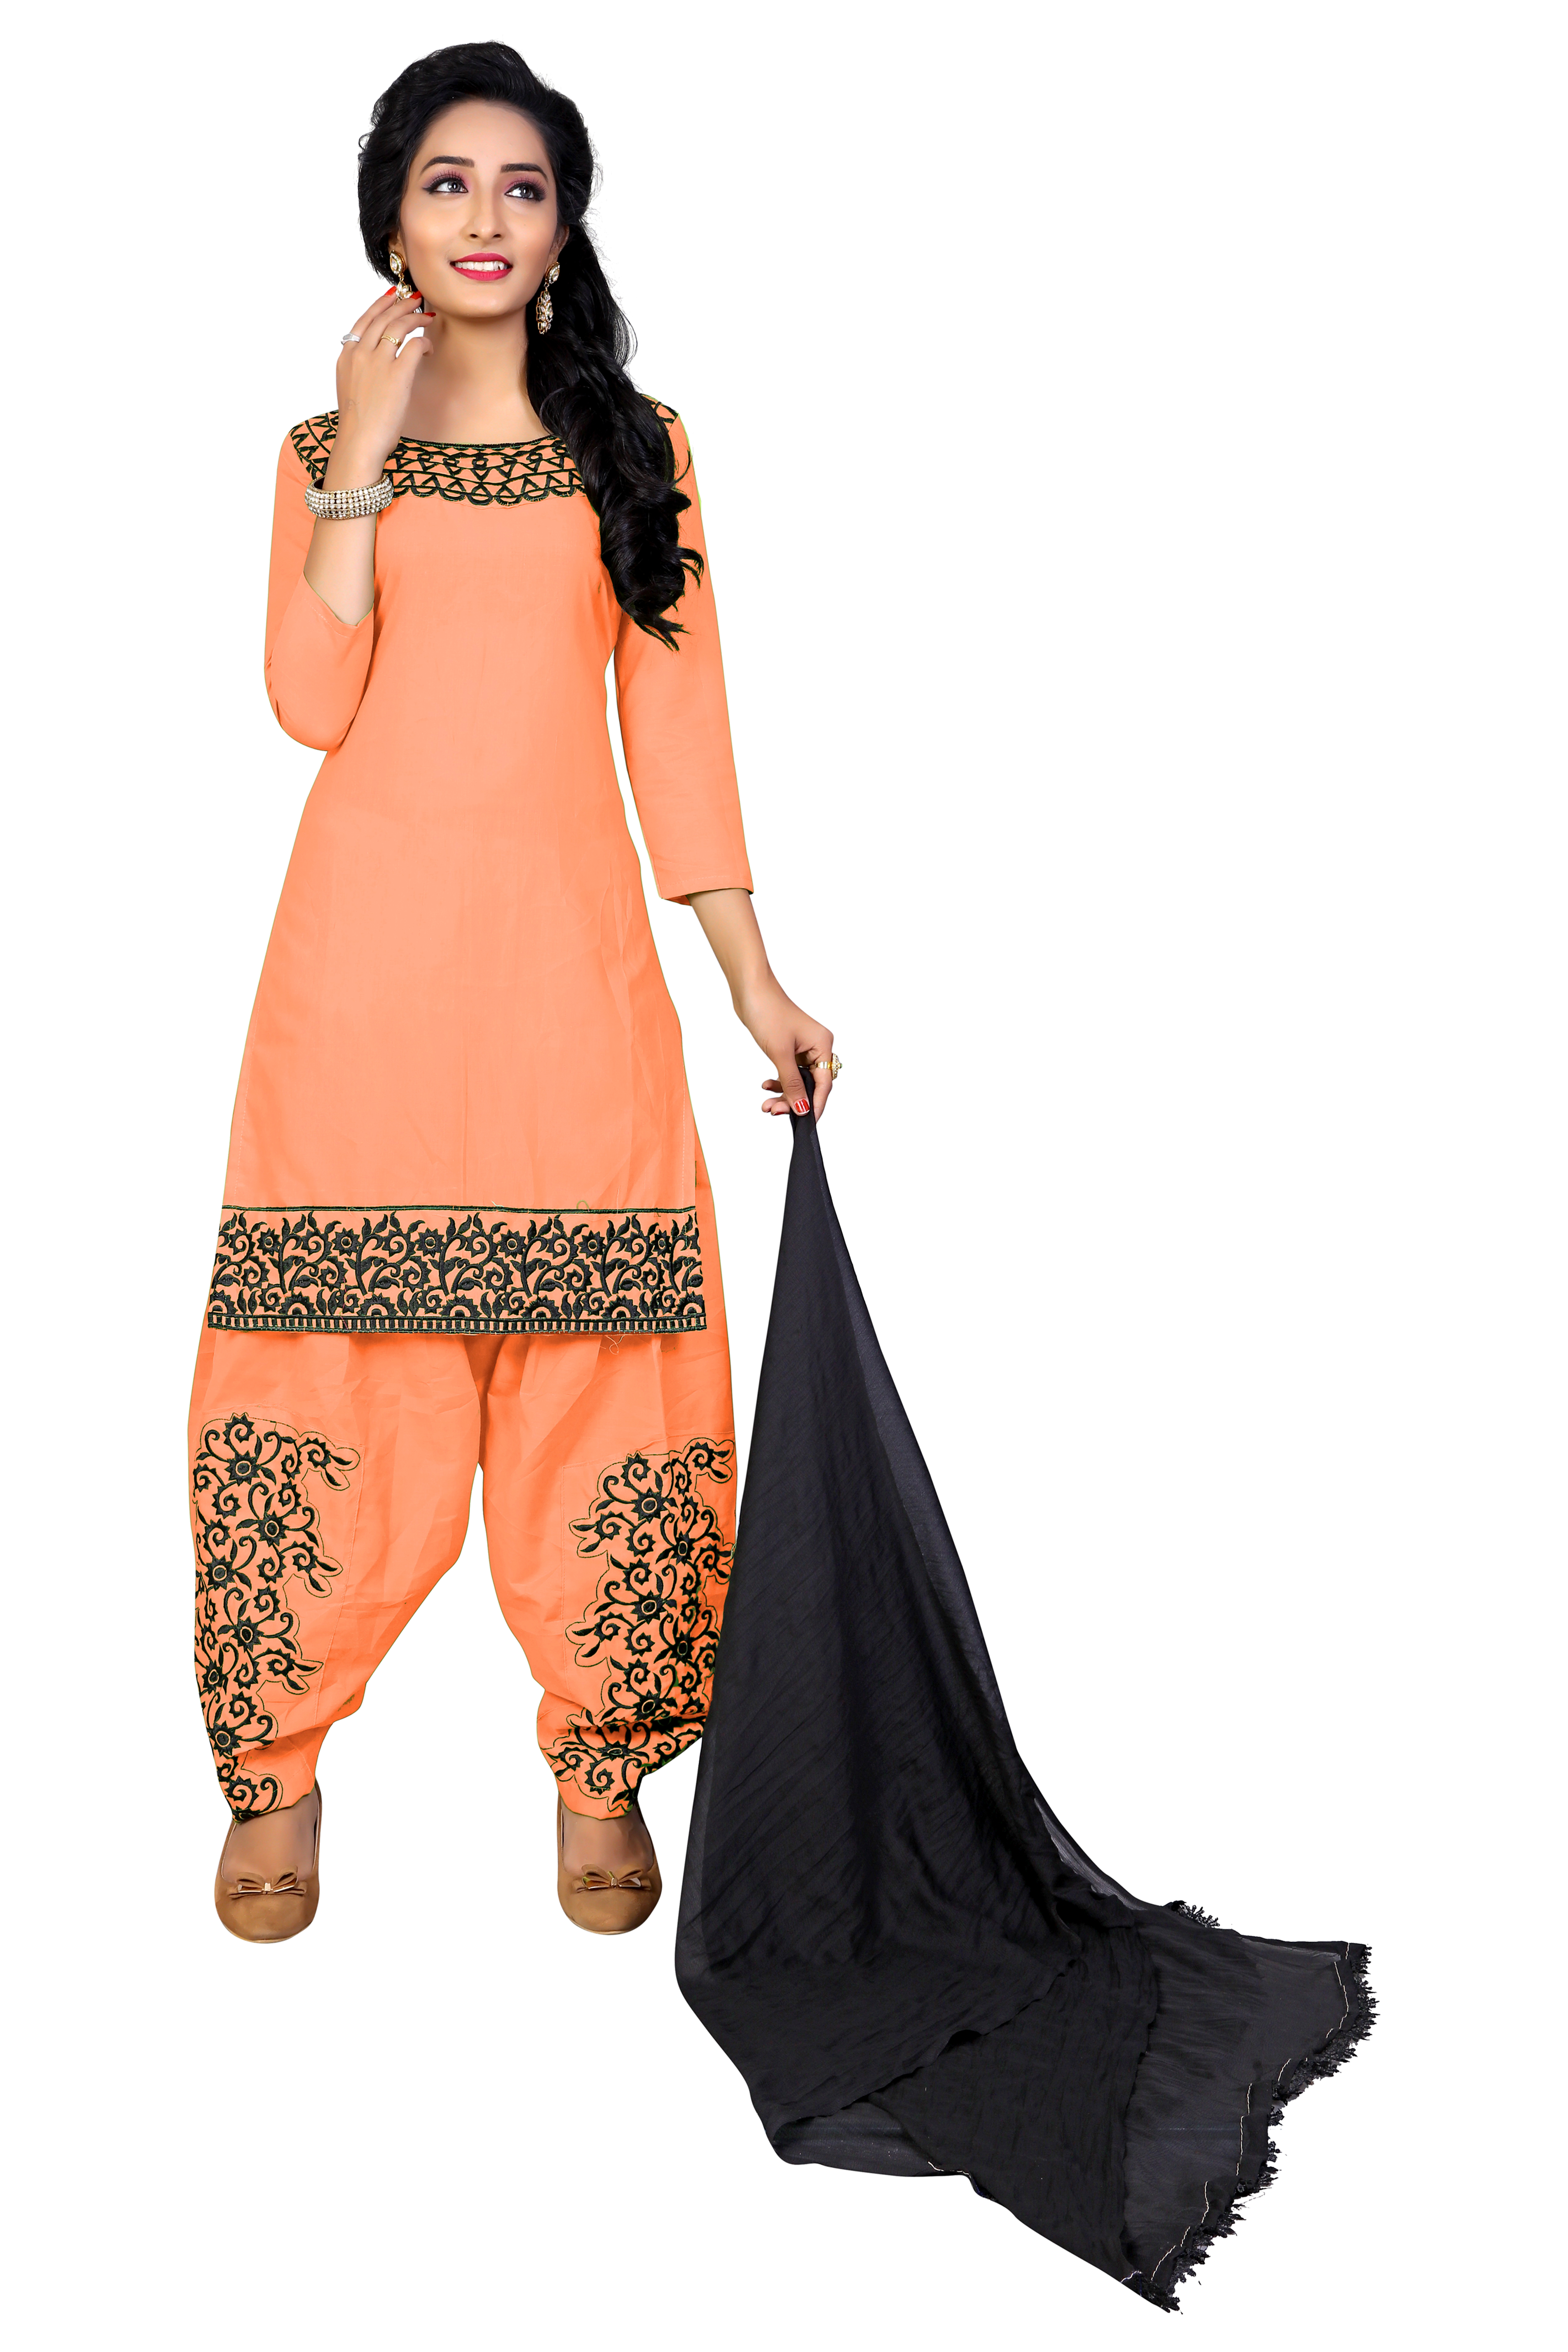 Style:- orange patilal  #fabulous Top, Bottom and Dupatta. #nicecollection Top, Inner and Dupatta. #supap Exclusively Newly Designed Product.Semi-stitched patiala salwar suit #marvelous Occasion Evening Wear, Party Wear, Casual Wear  price:- 449/-  Contact for call and whatapp : 99243644307 Piyush Dhameliya